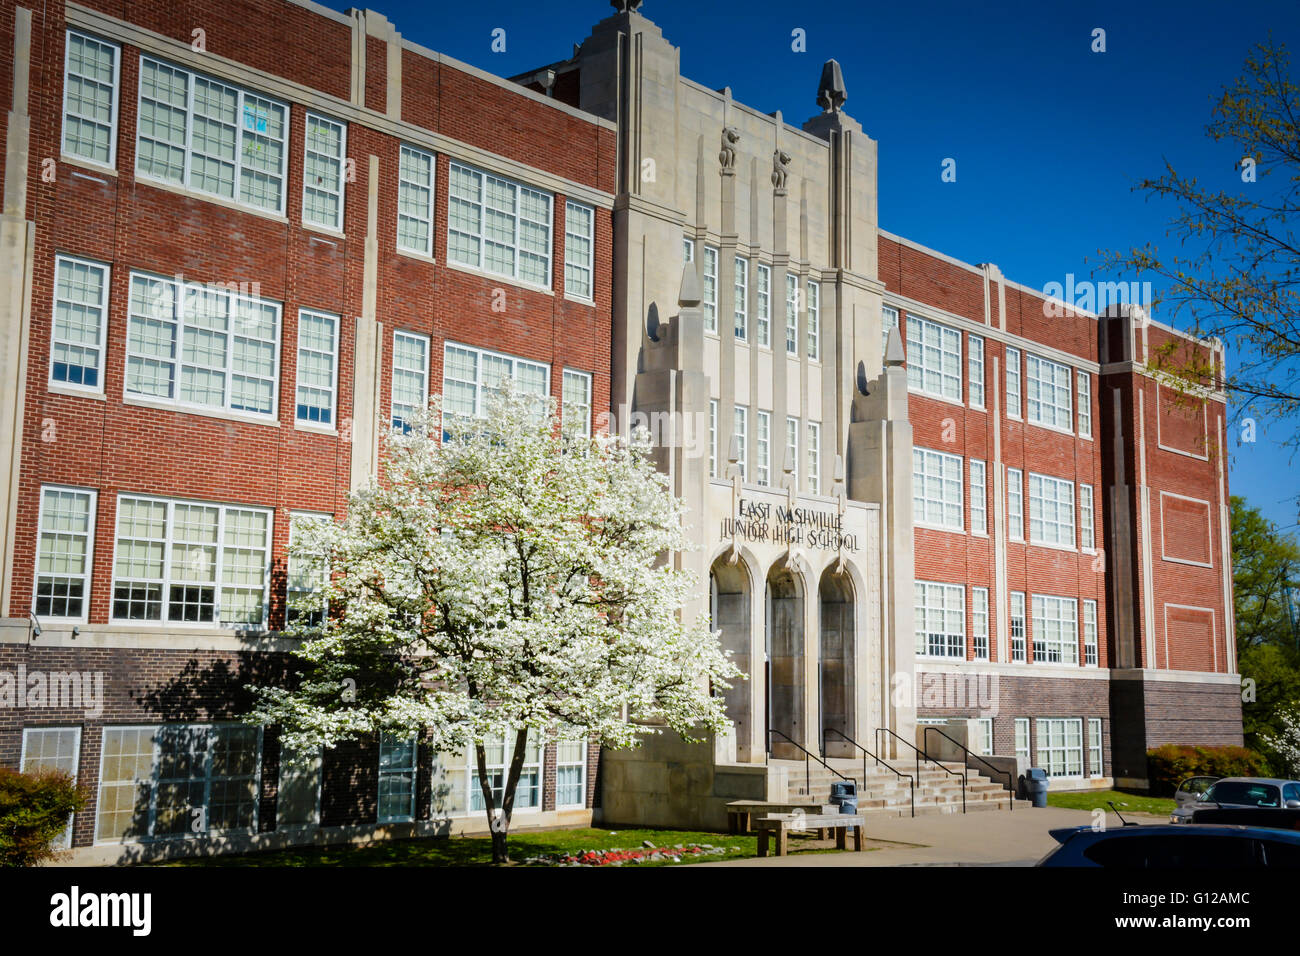 The Stately East Junior High School on Gallatin Road East Nashville TN building has lovely blooming dogwood trees - Stock Image